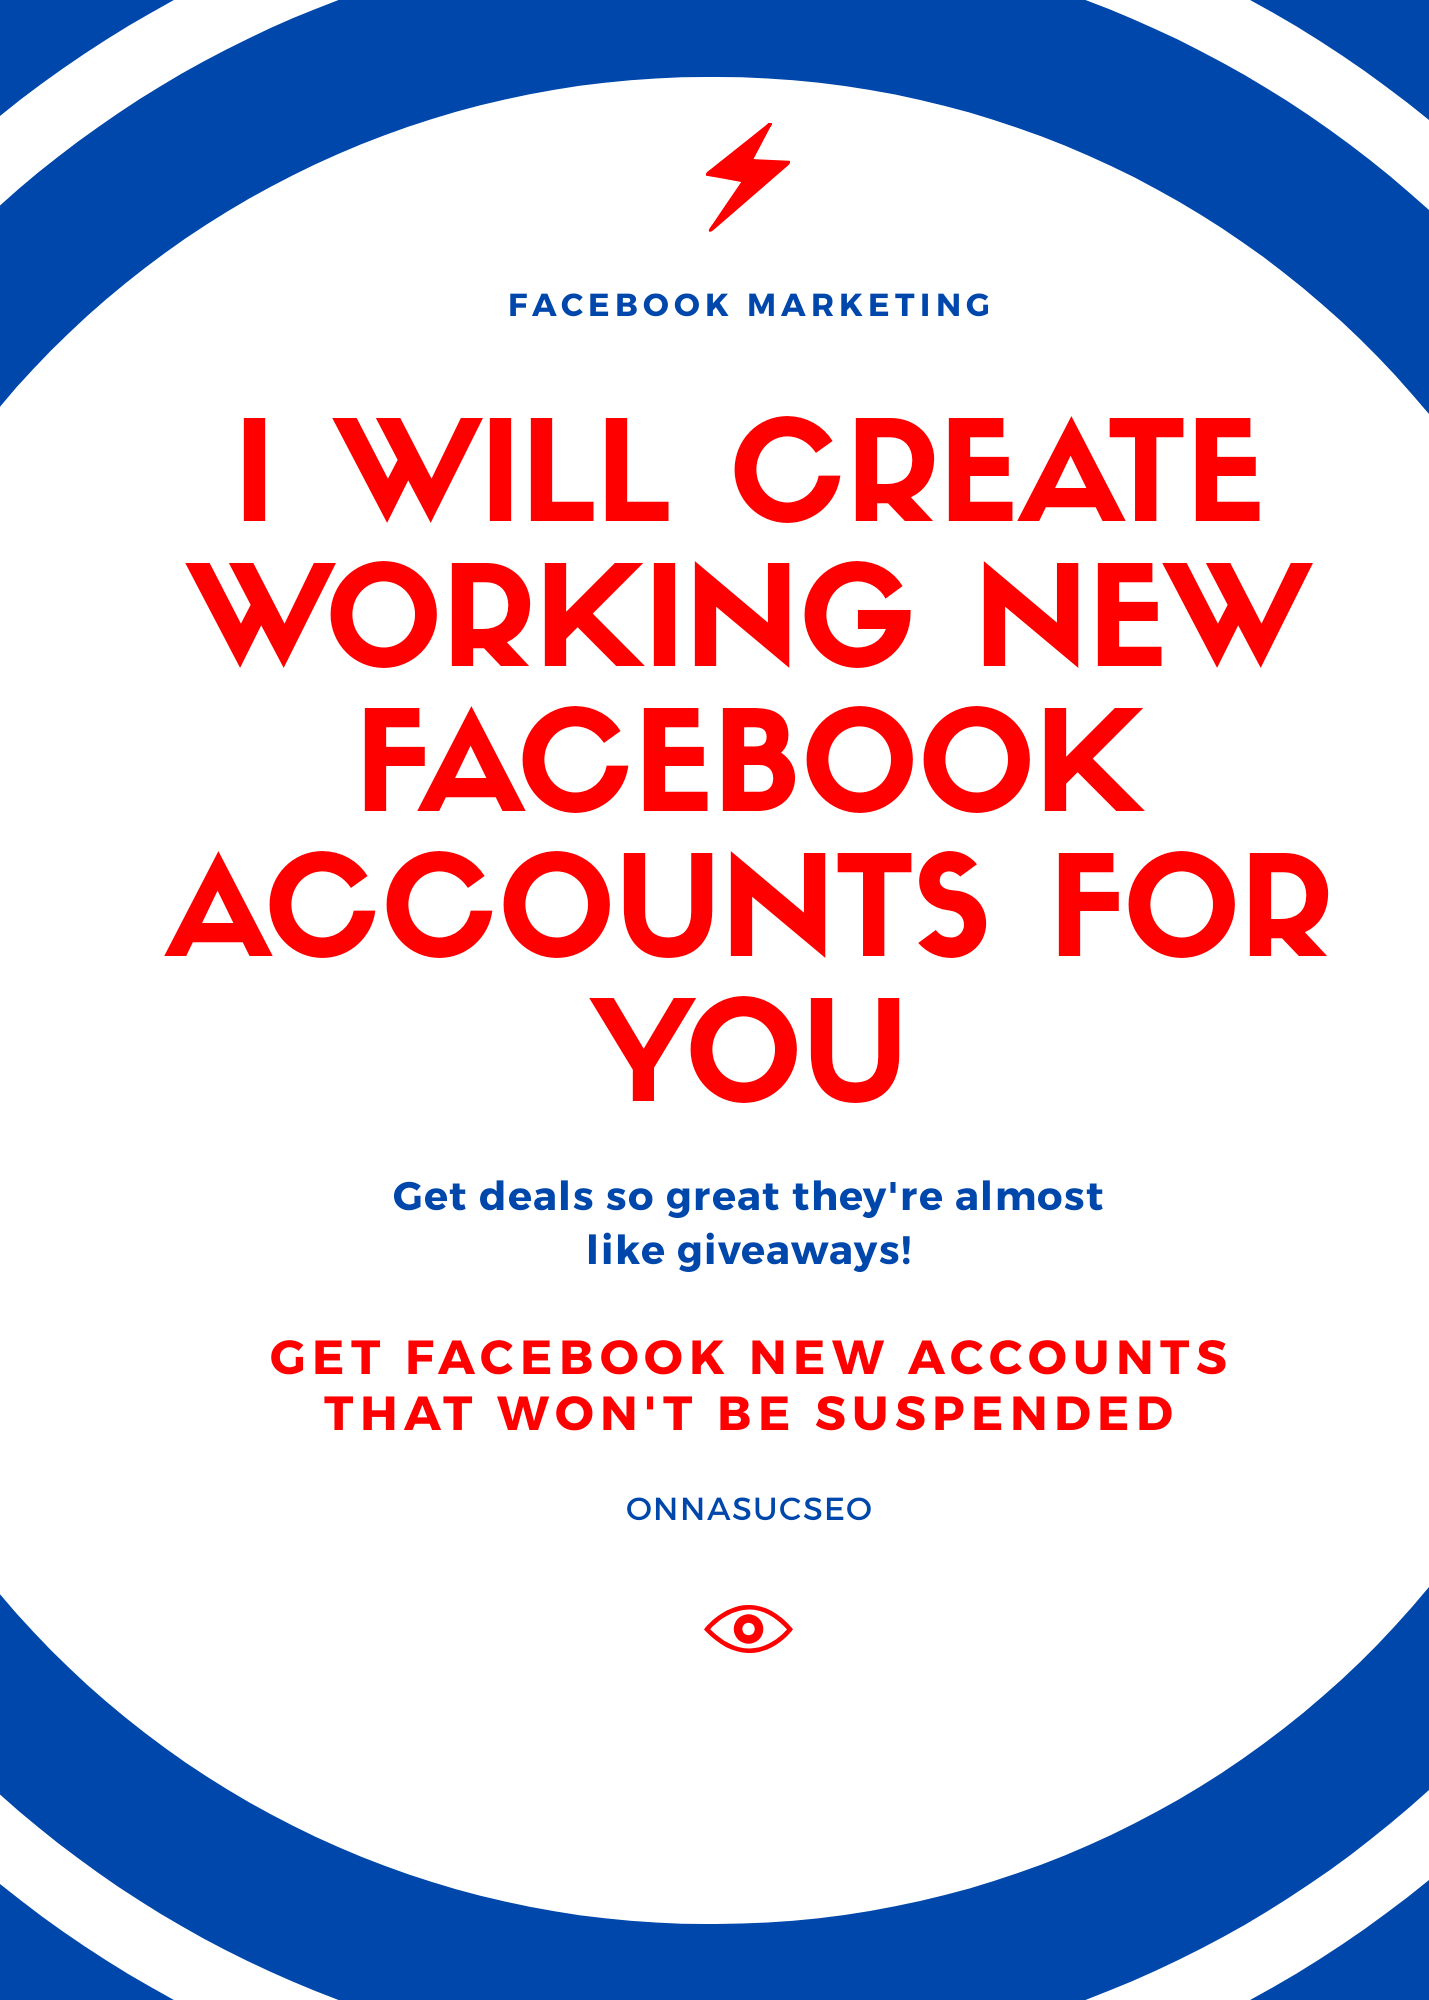 I will create new Social media pages that cannot be suspended